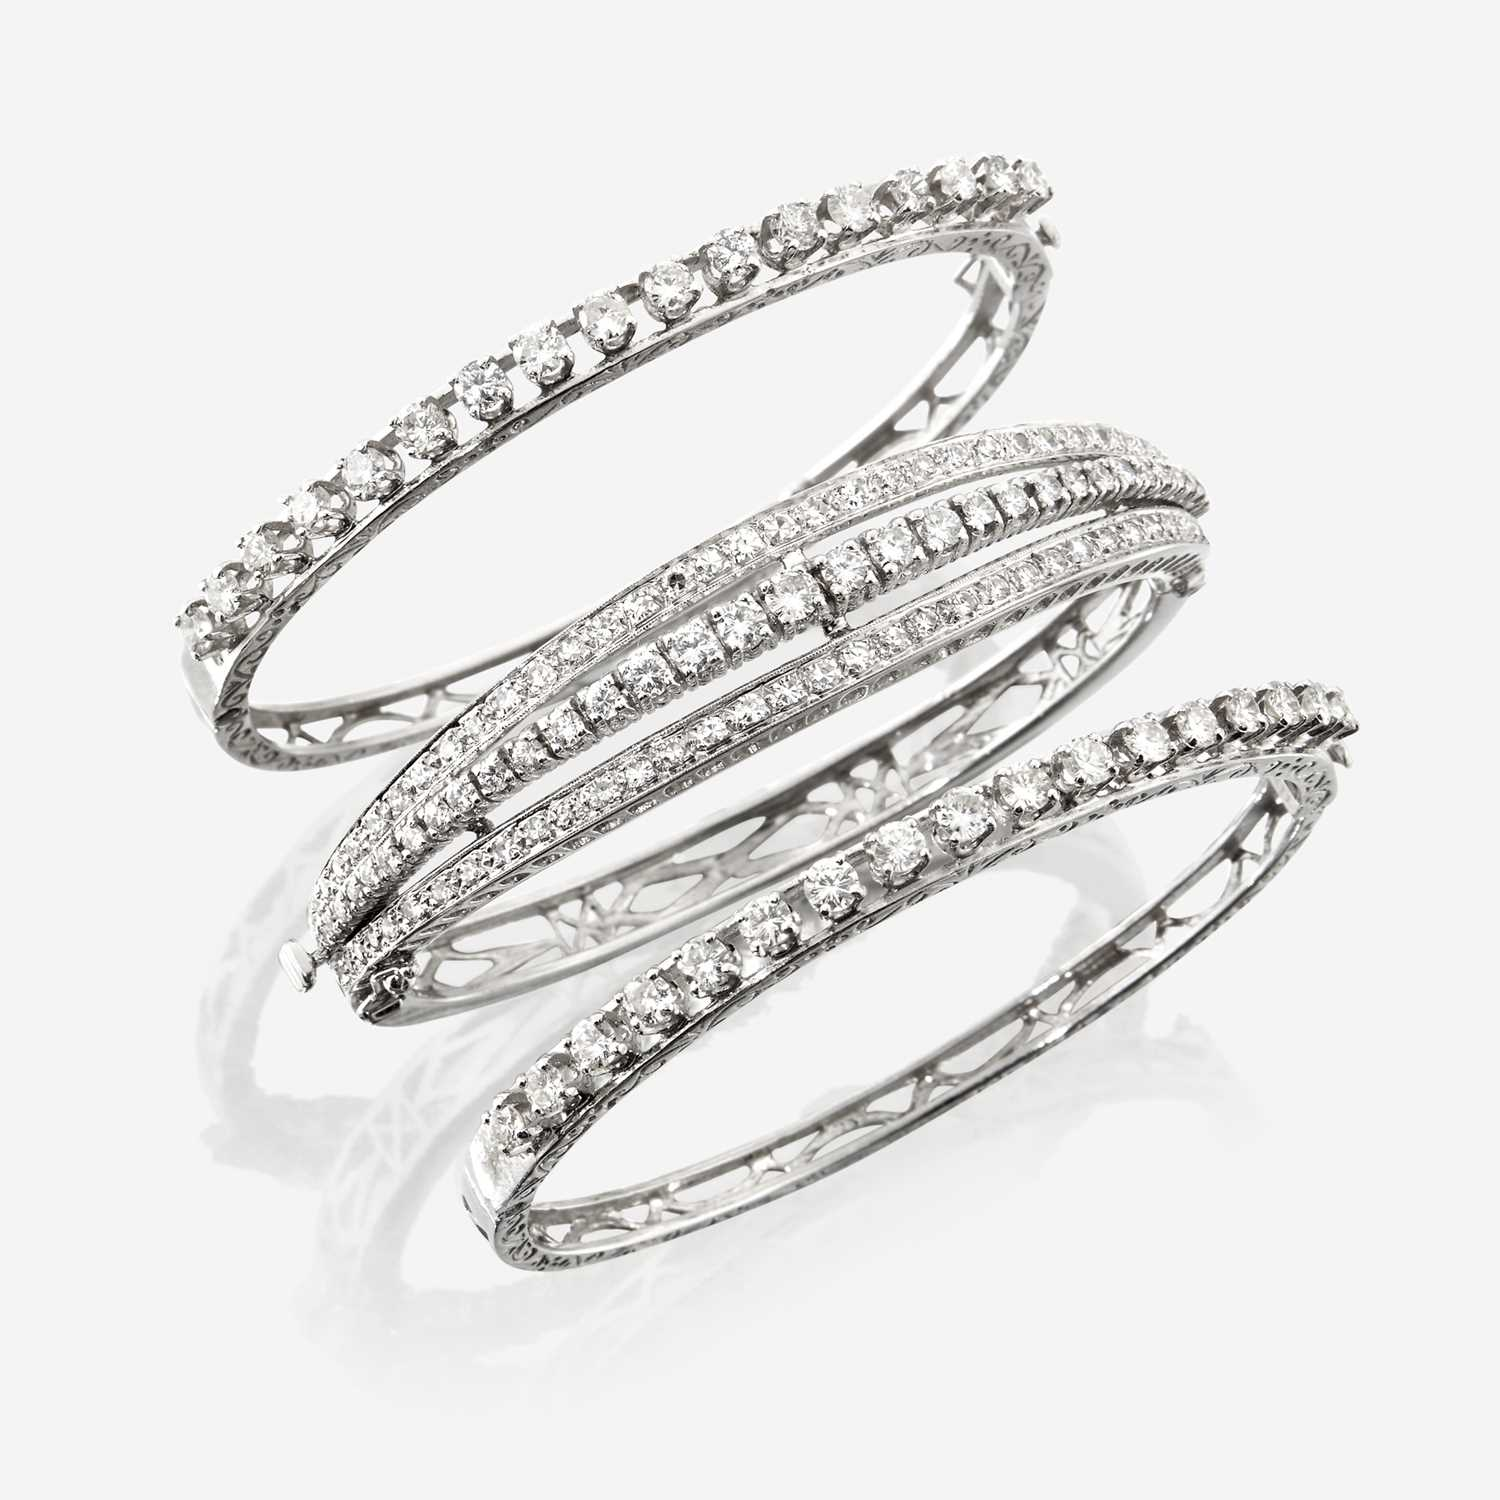 Lot 54 - A collection of three diamond and fourteen karat white gold bangles